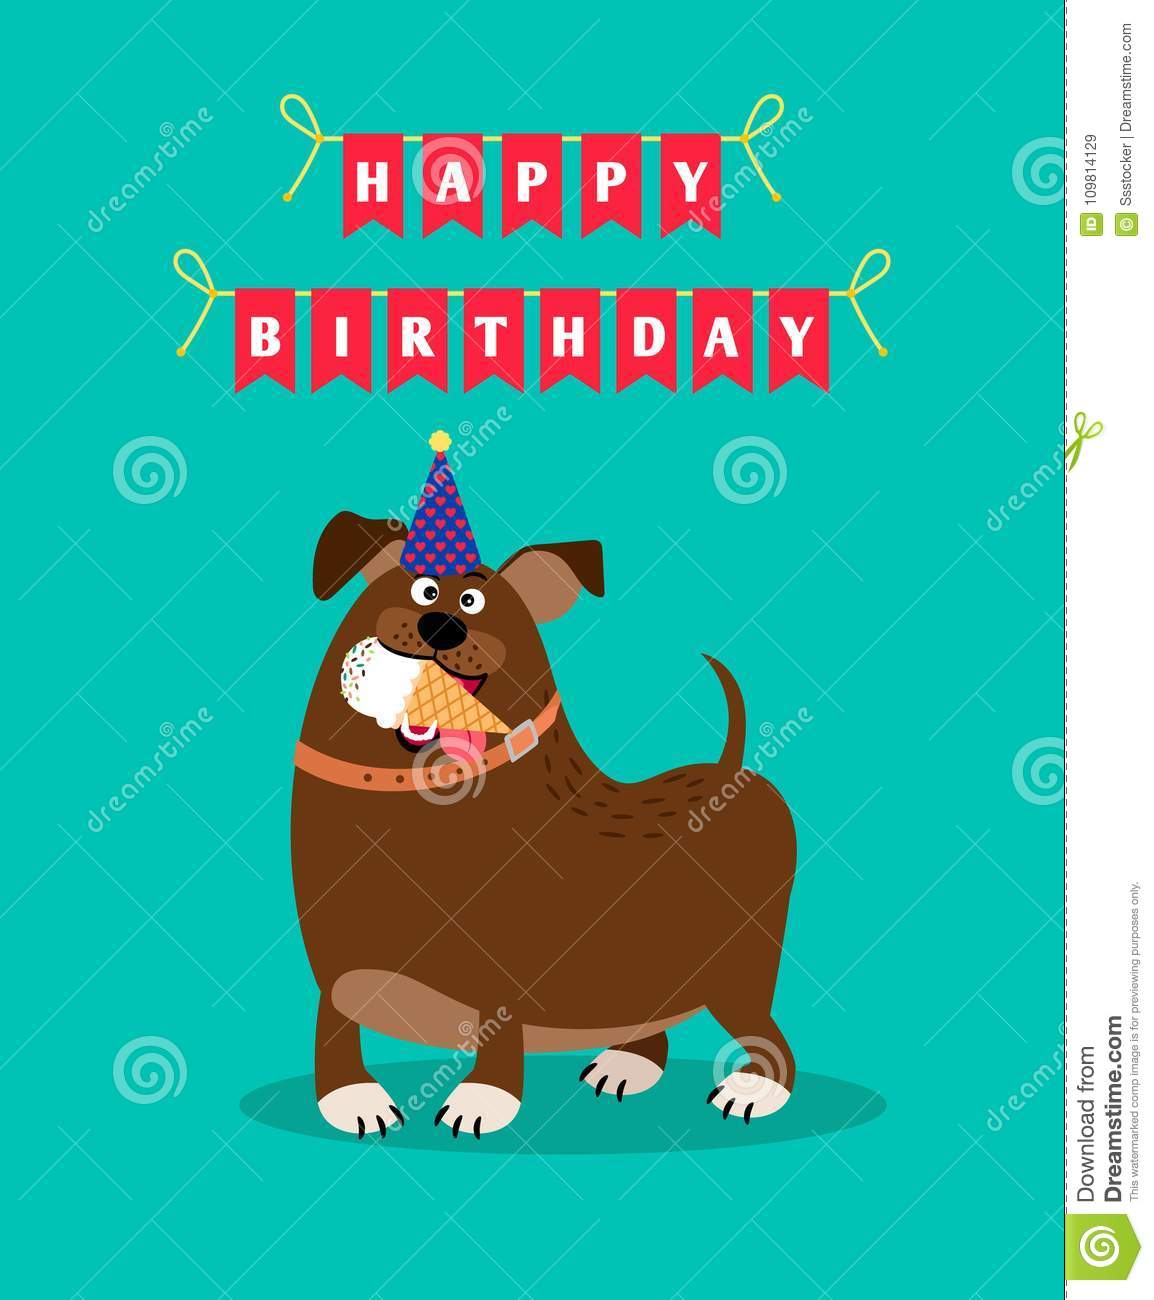 Funny Dog And Ice Cream Card Stock Vector - Illustration of ...